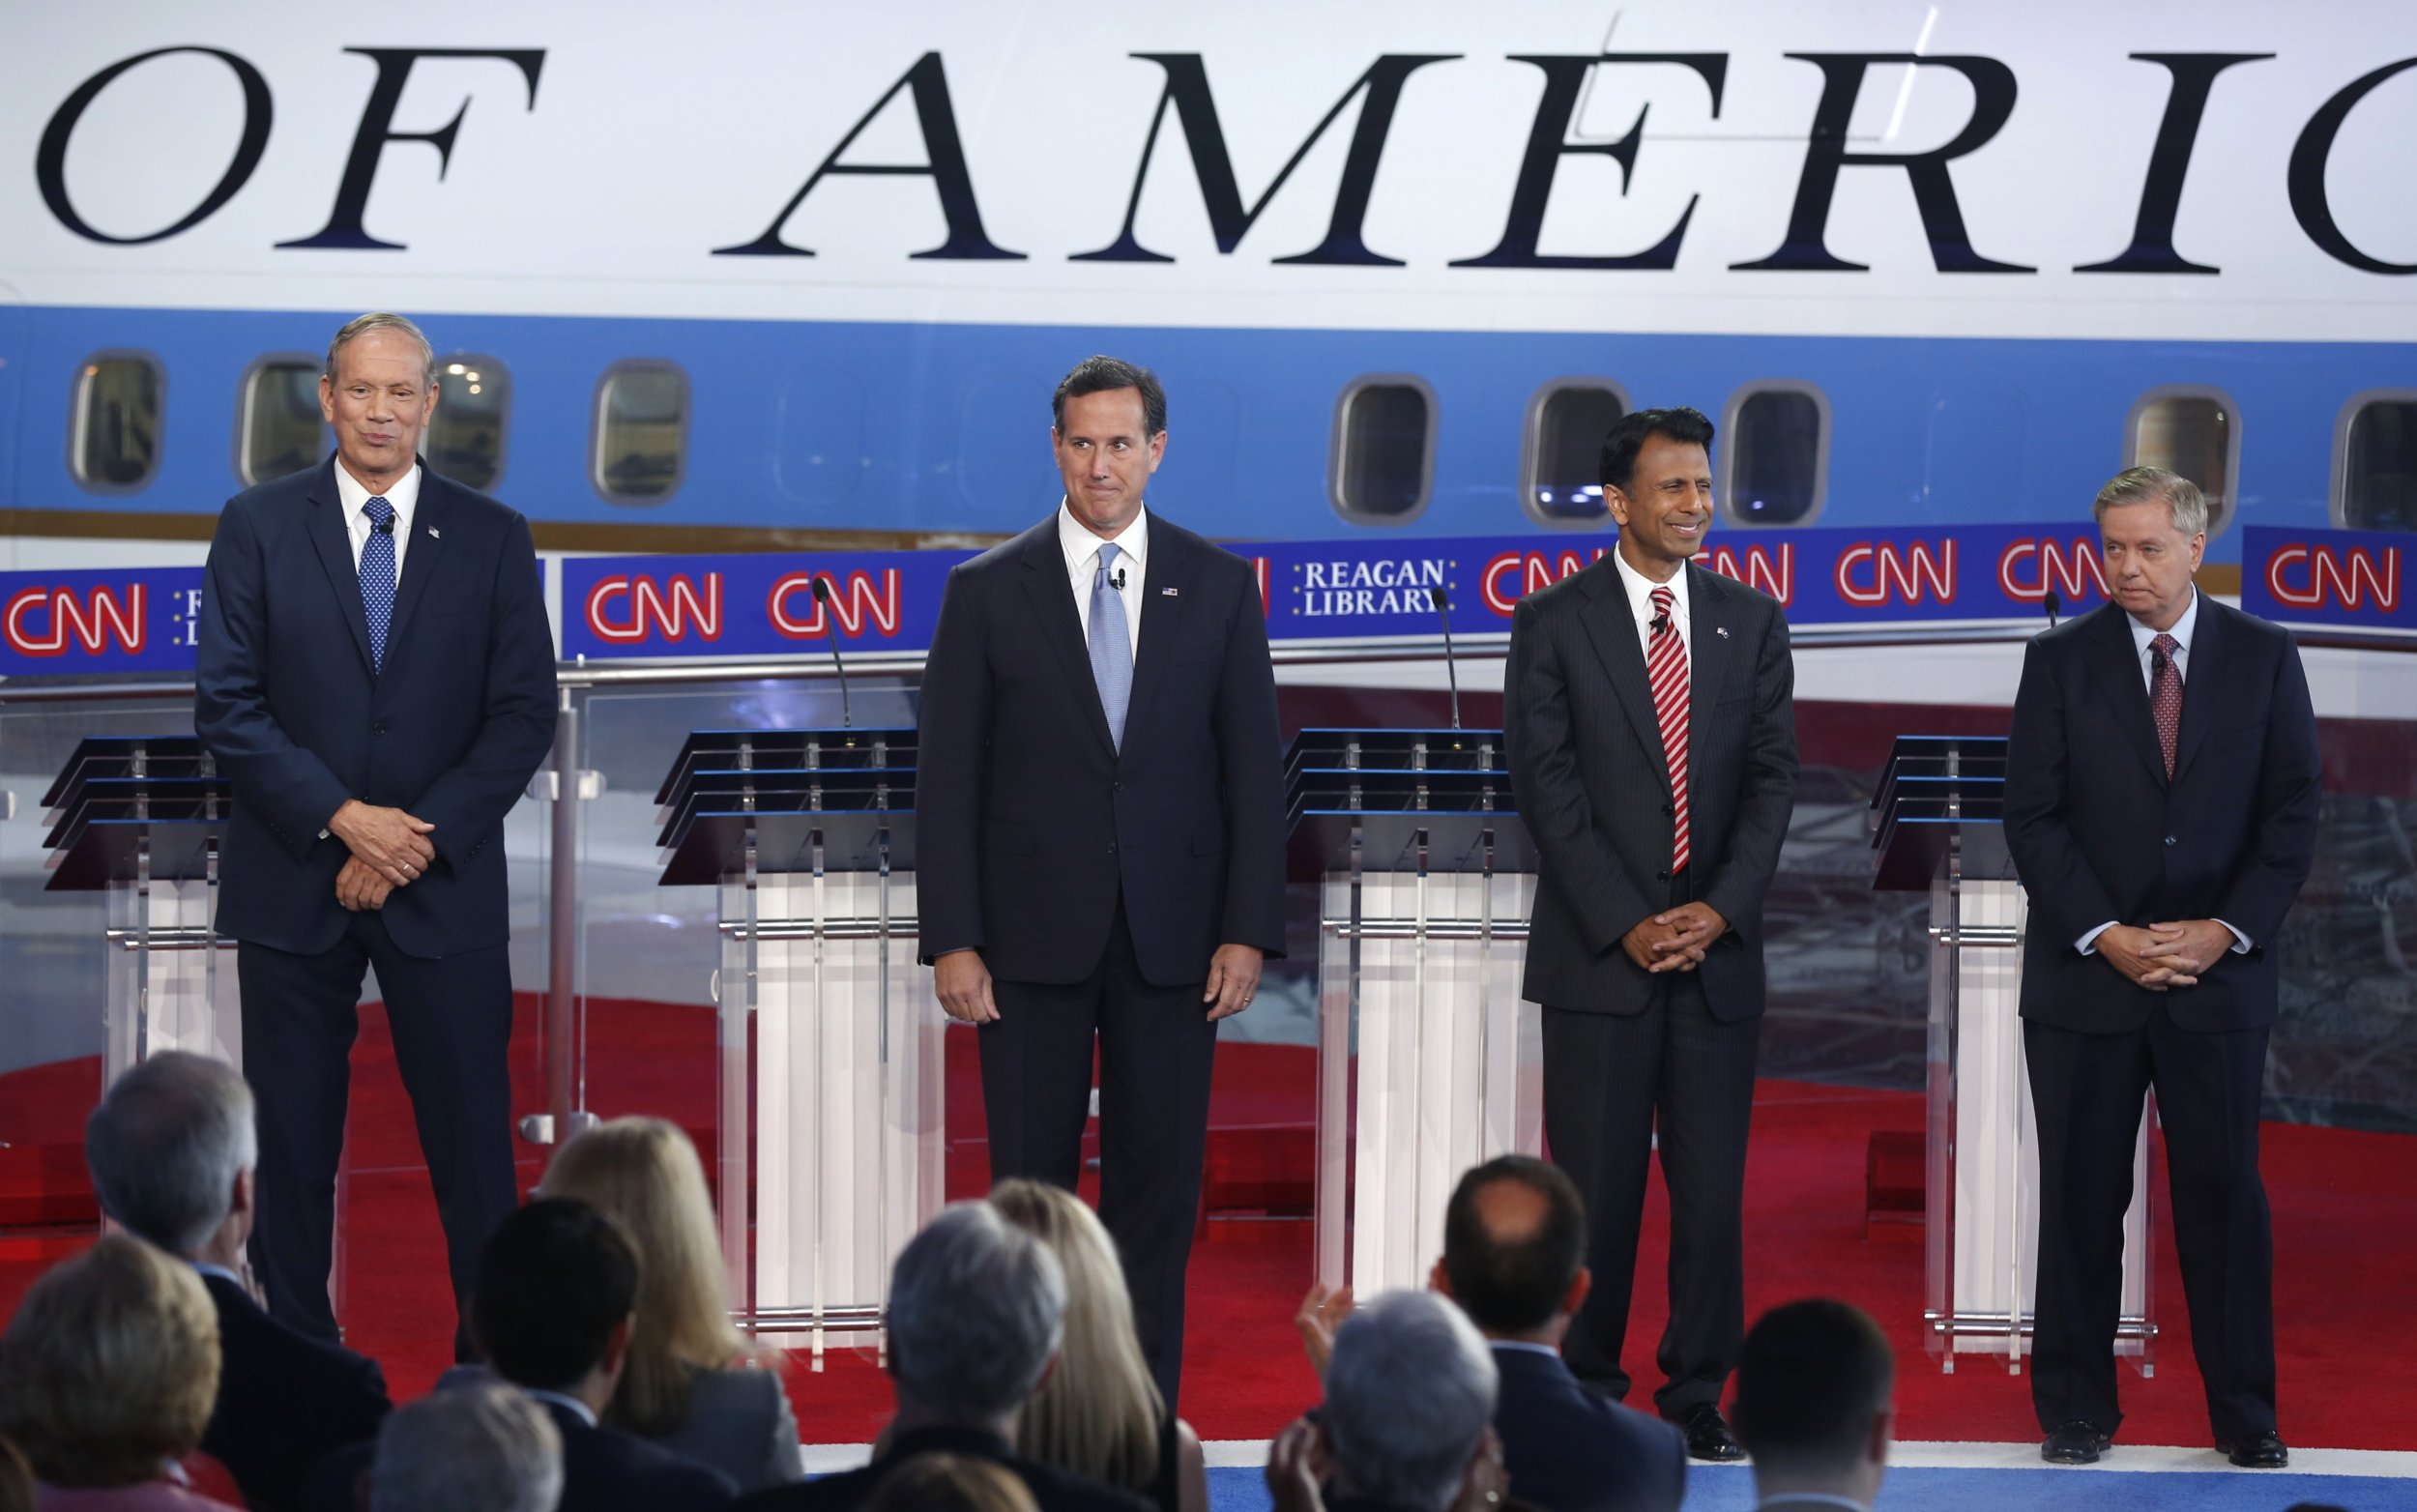 jindal graham santorum pataki square off in undercard debate